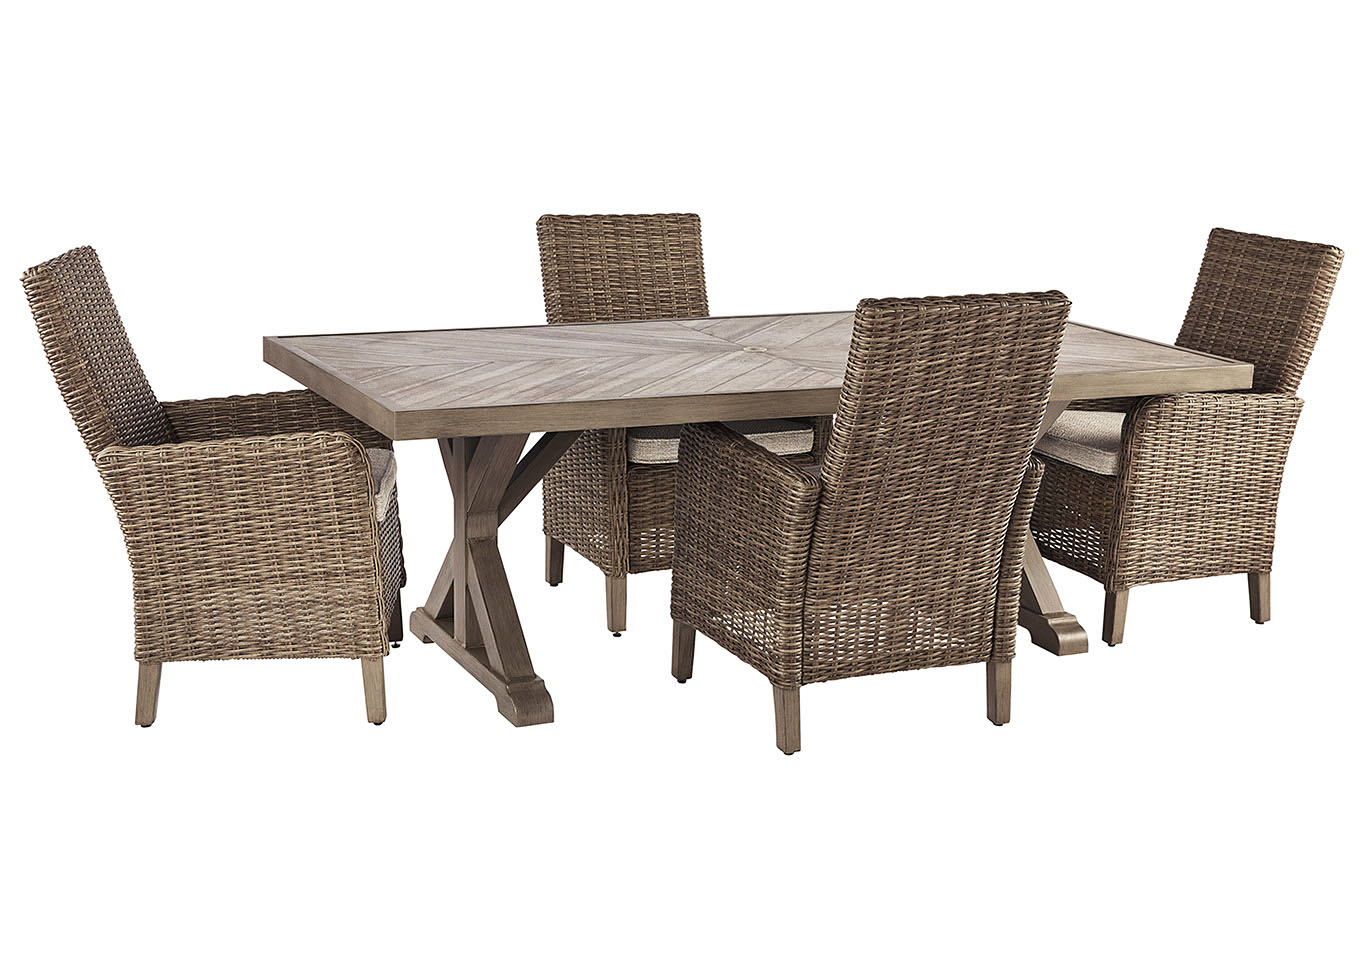 Beachcroft Beige Dining Table w/4 Side Chairs,Outdoor By Ashley